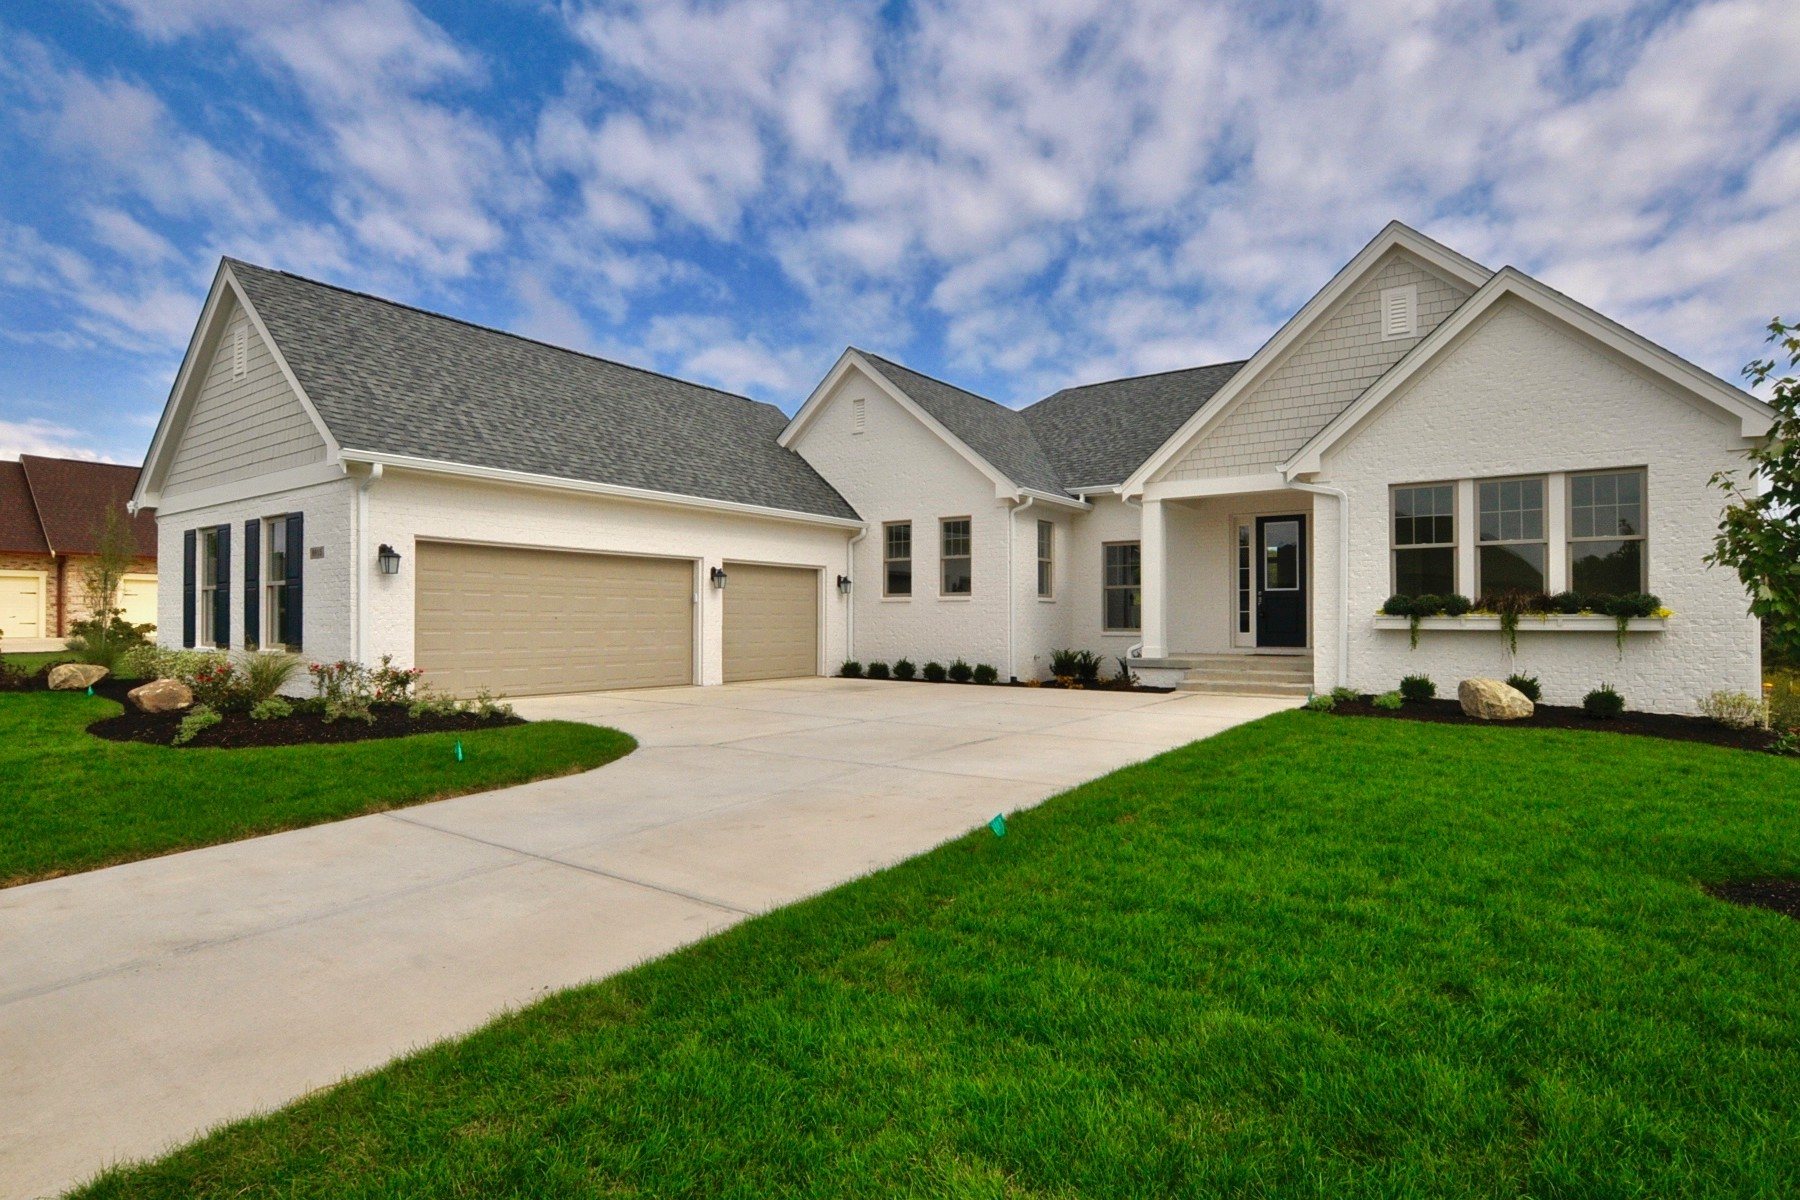 Single Family Home for Sale at Top of the Line Finishes 9915 S. Towne Lane Carmel, Indiana, 46033 United States